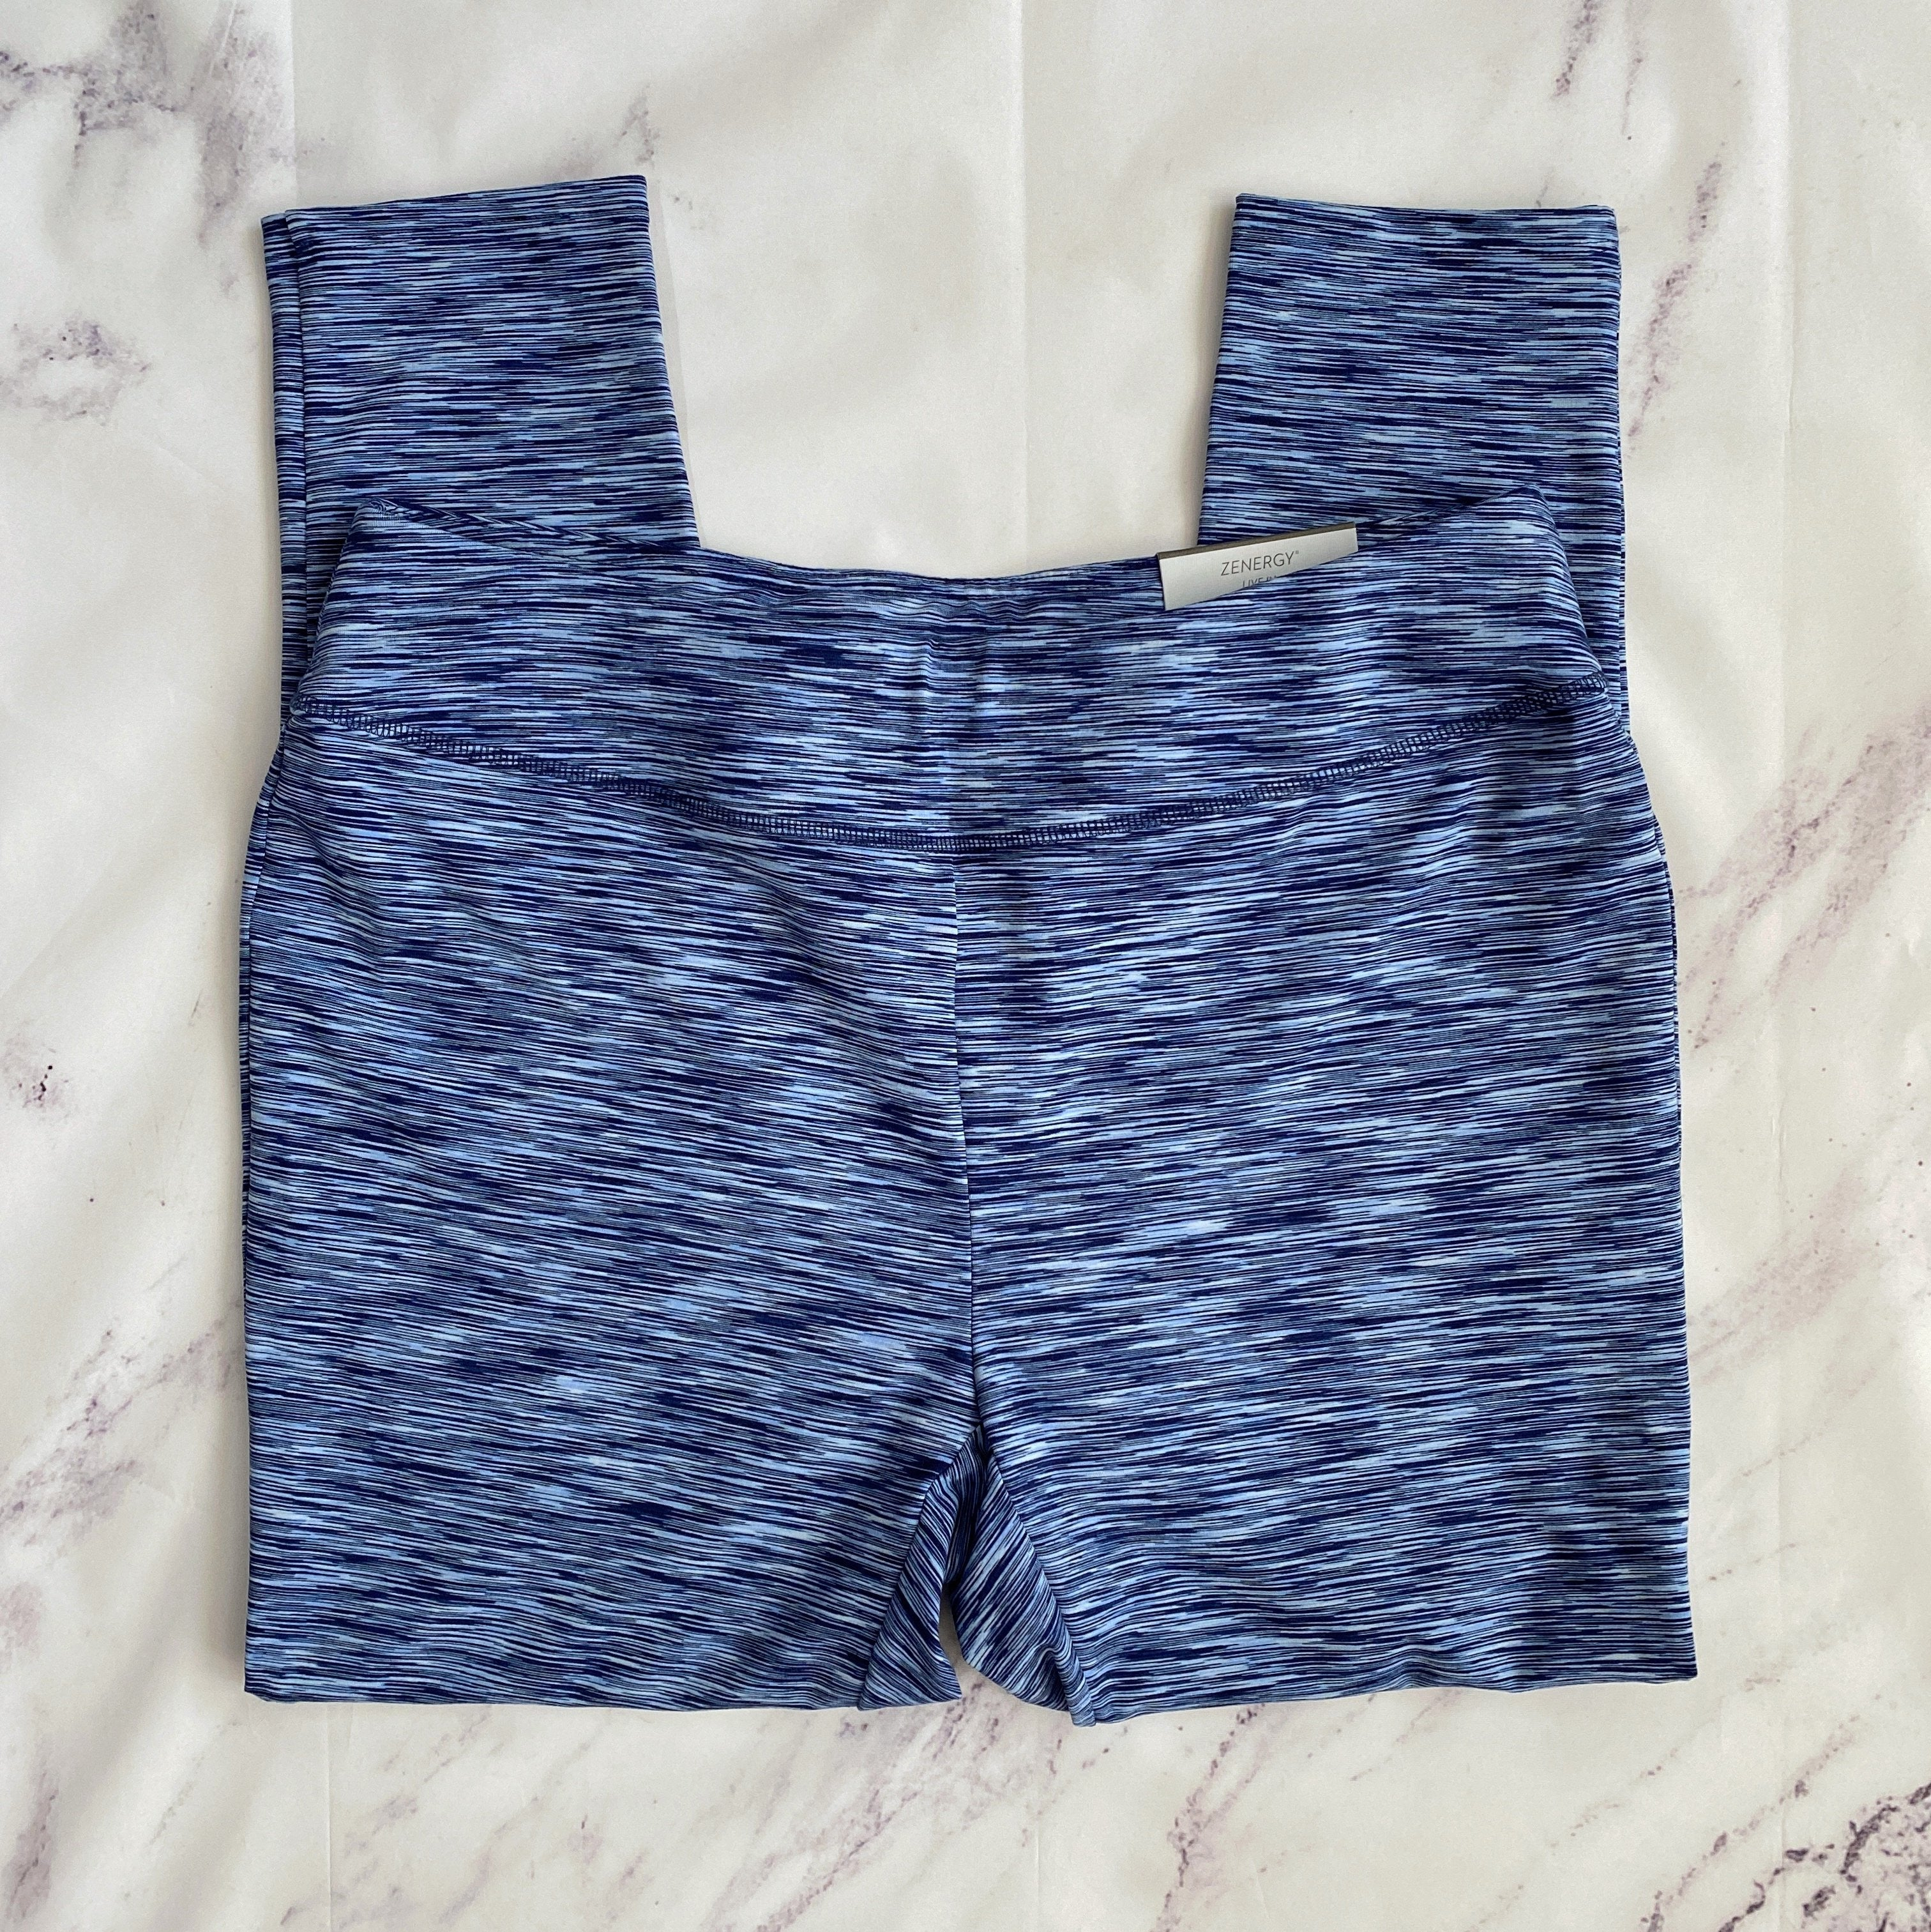 Zenergy by Chico's blue workout ankle leggings size L NWT - My Girlfriend's Wardrobe LLC